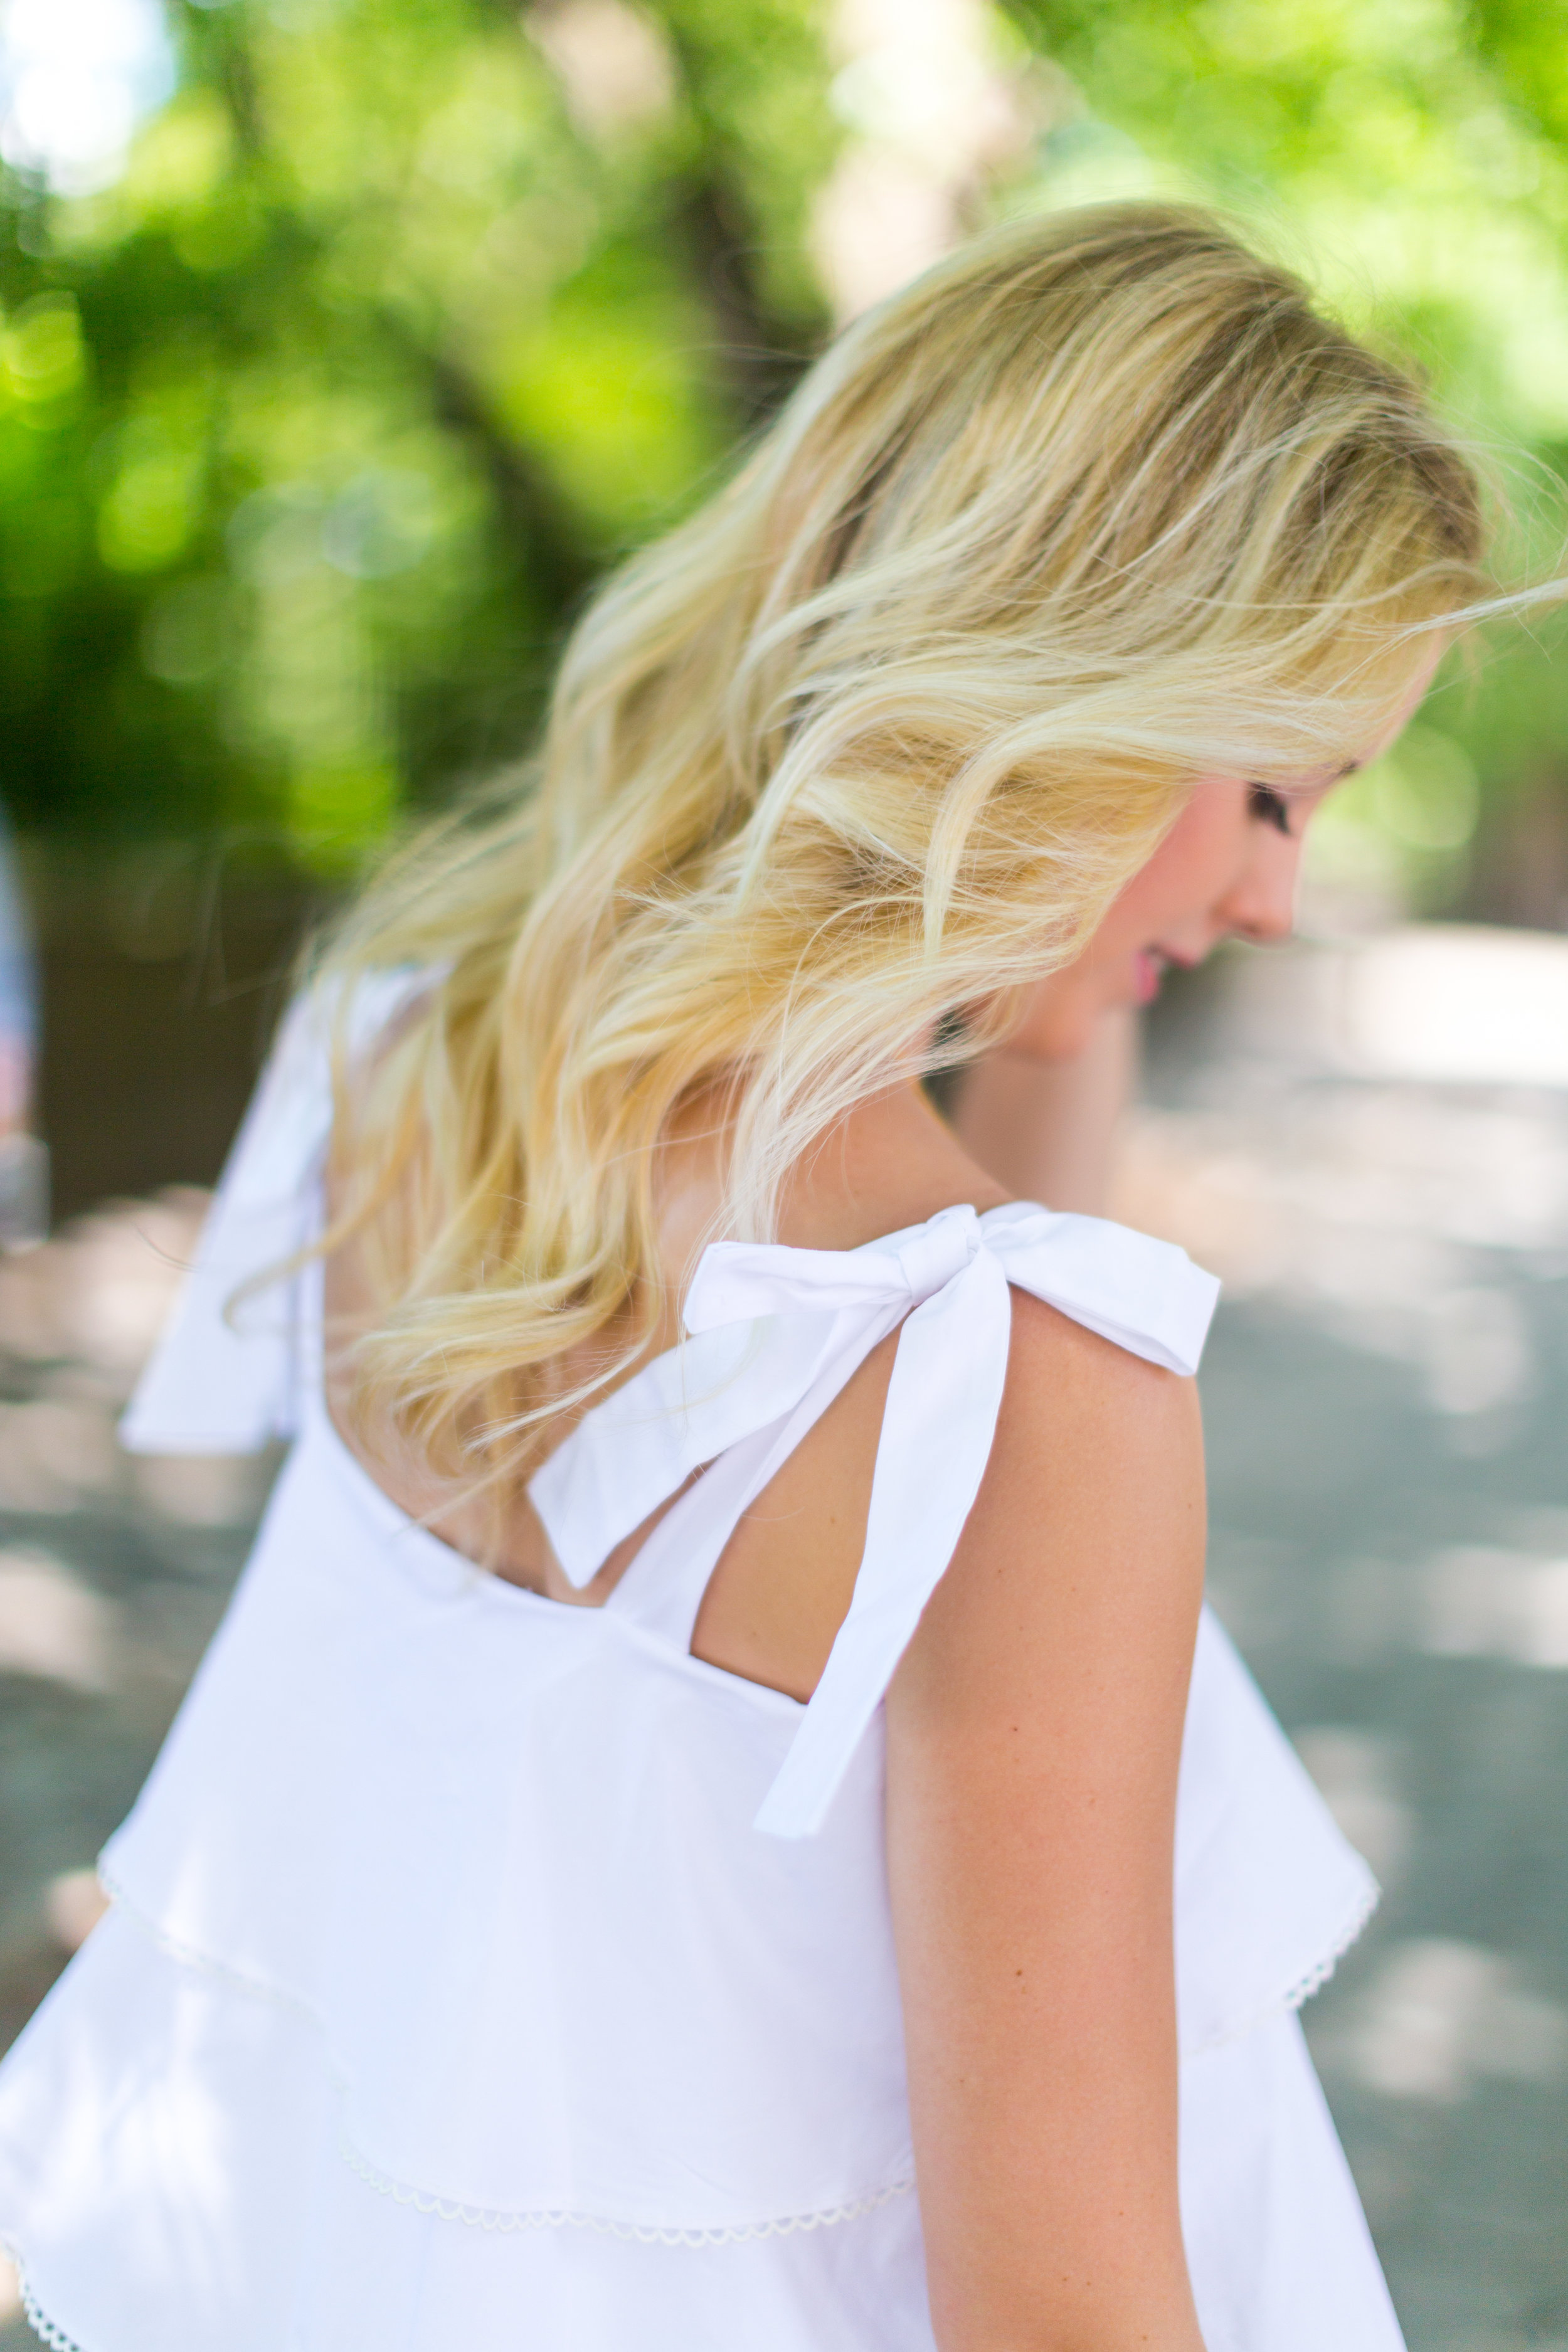 NYC Central Park Summer Fashion White Ruffled Dress-12.jpg